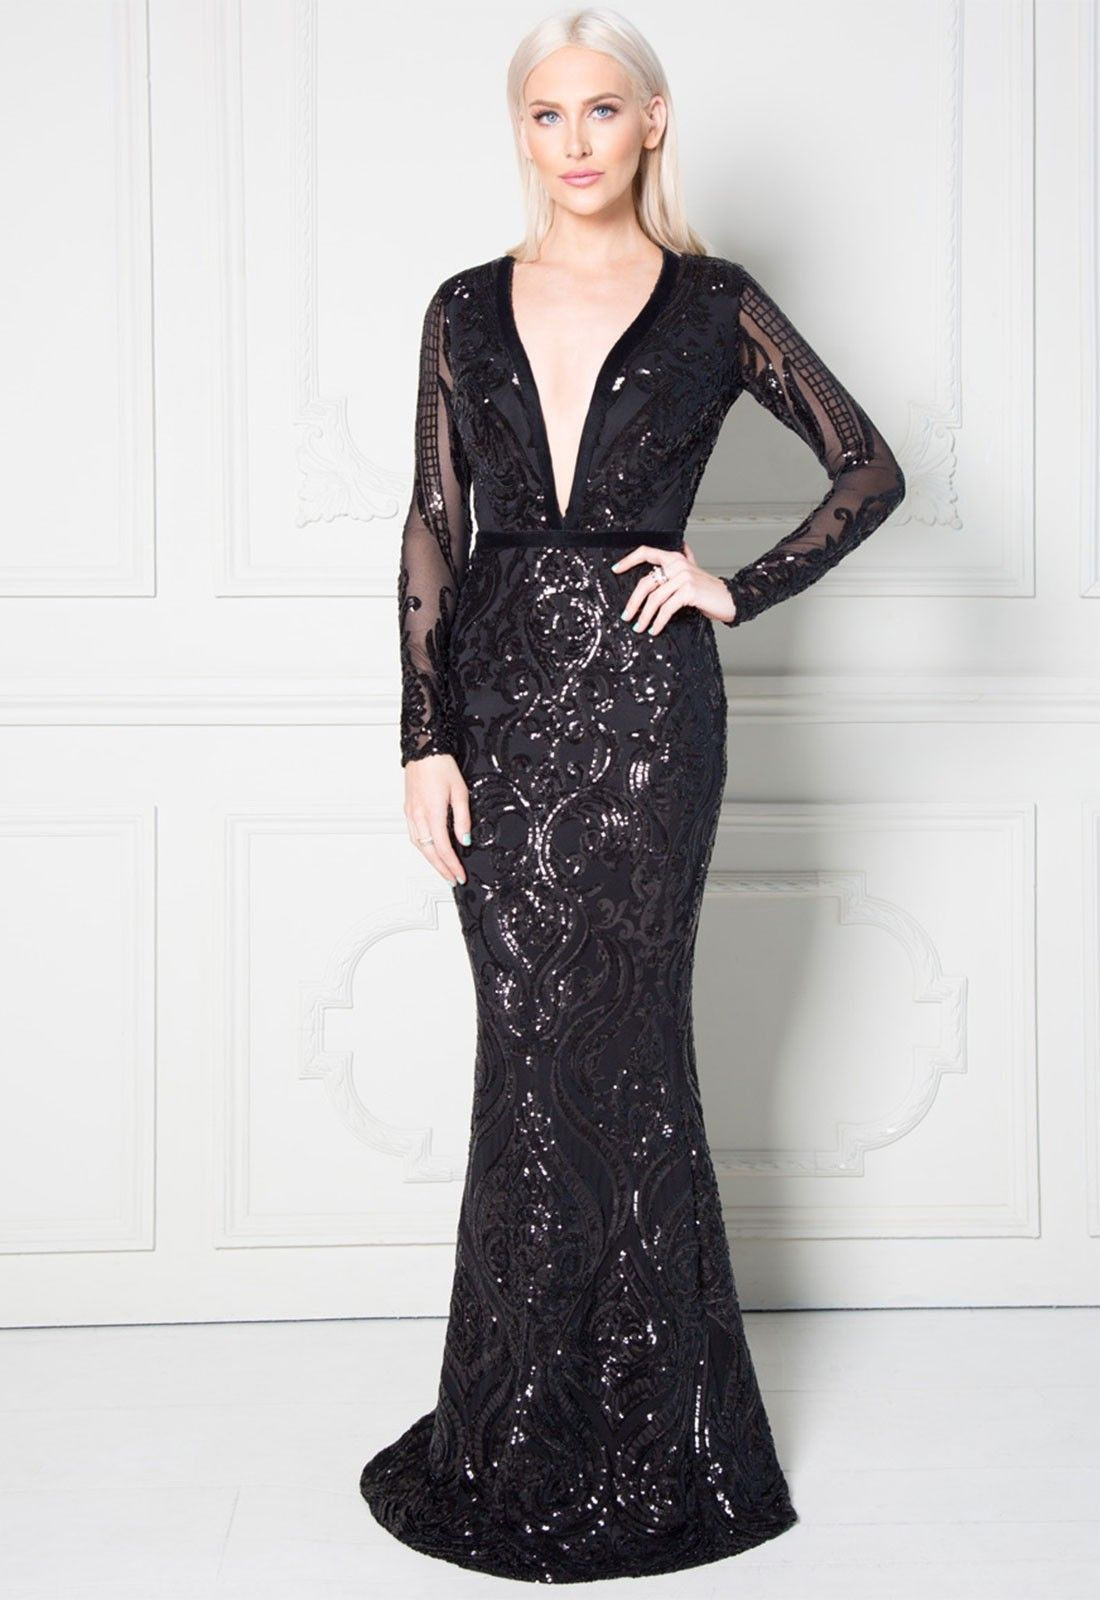 86ac2598f73d7 Stephanie Pratt Deep V Neck Sequin Embroidered Maxi Dress in Black ...